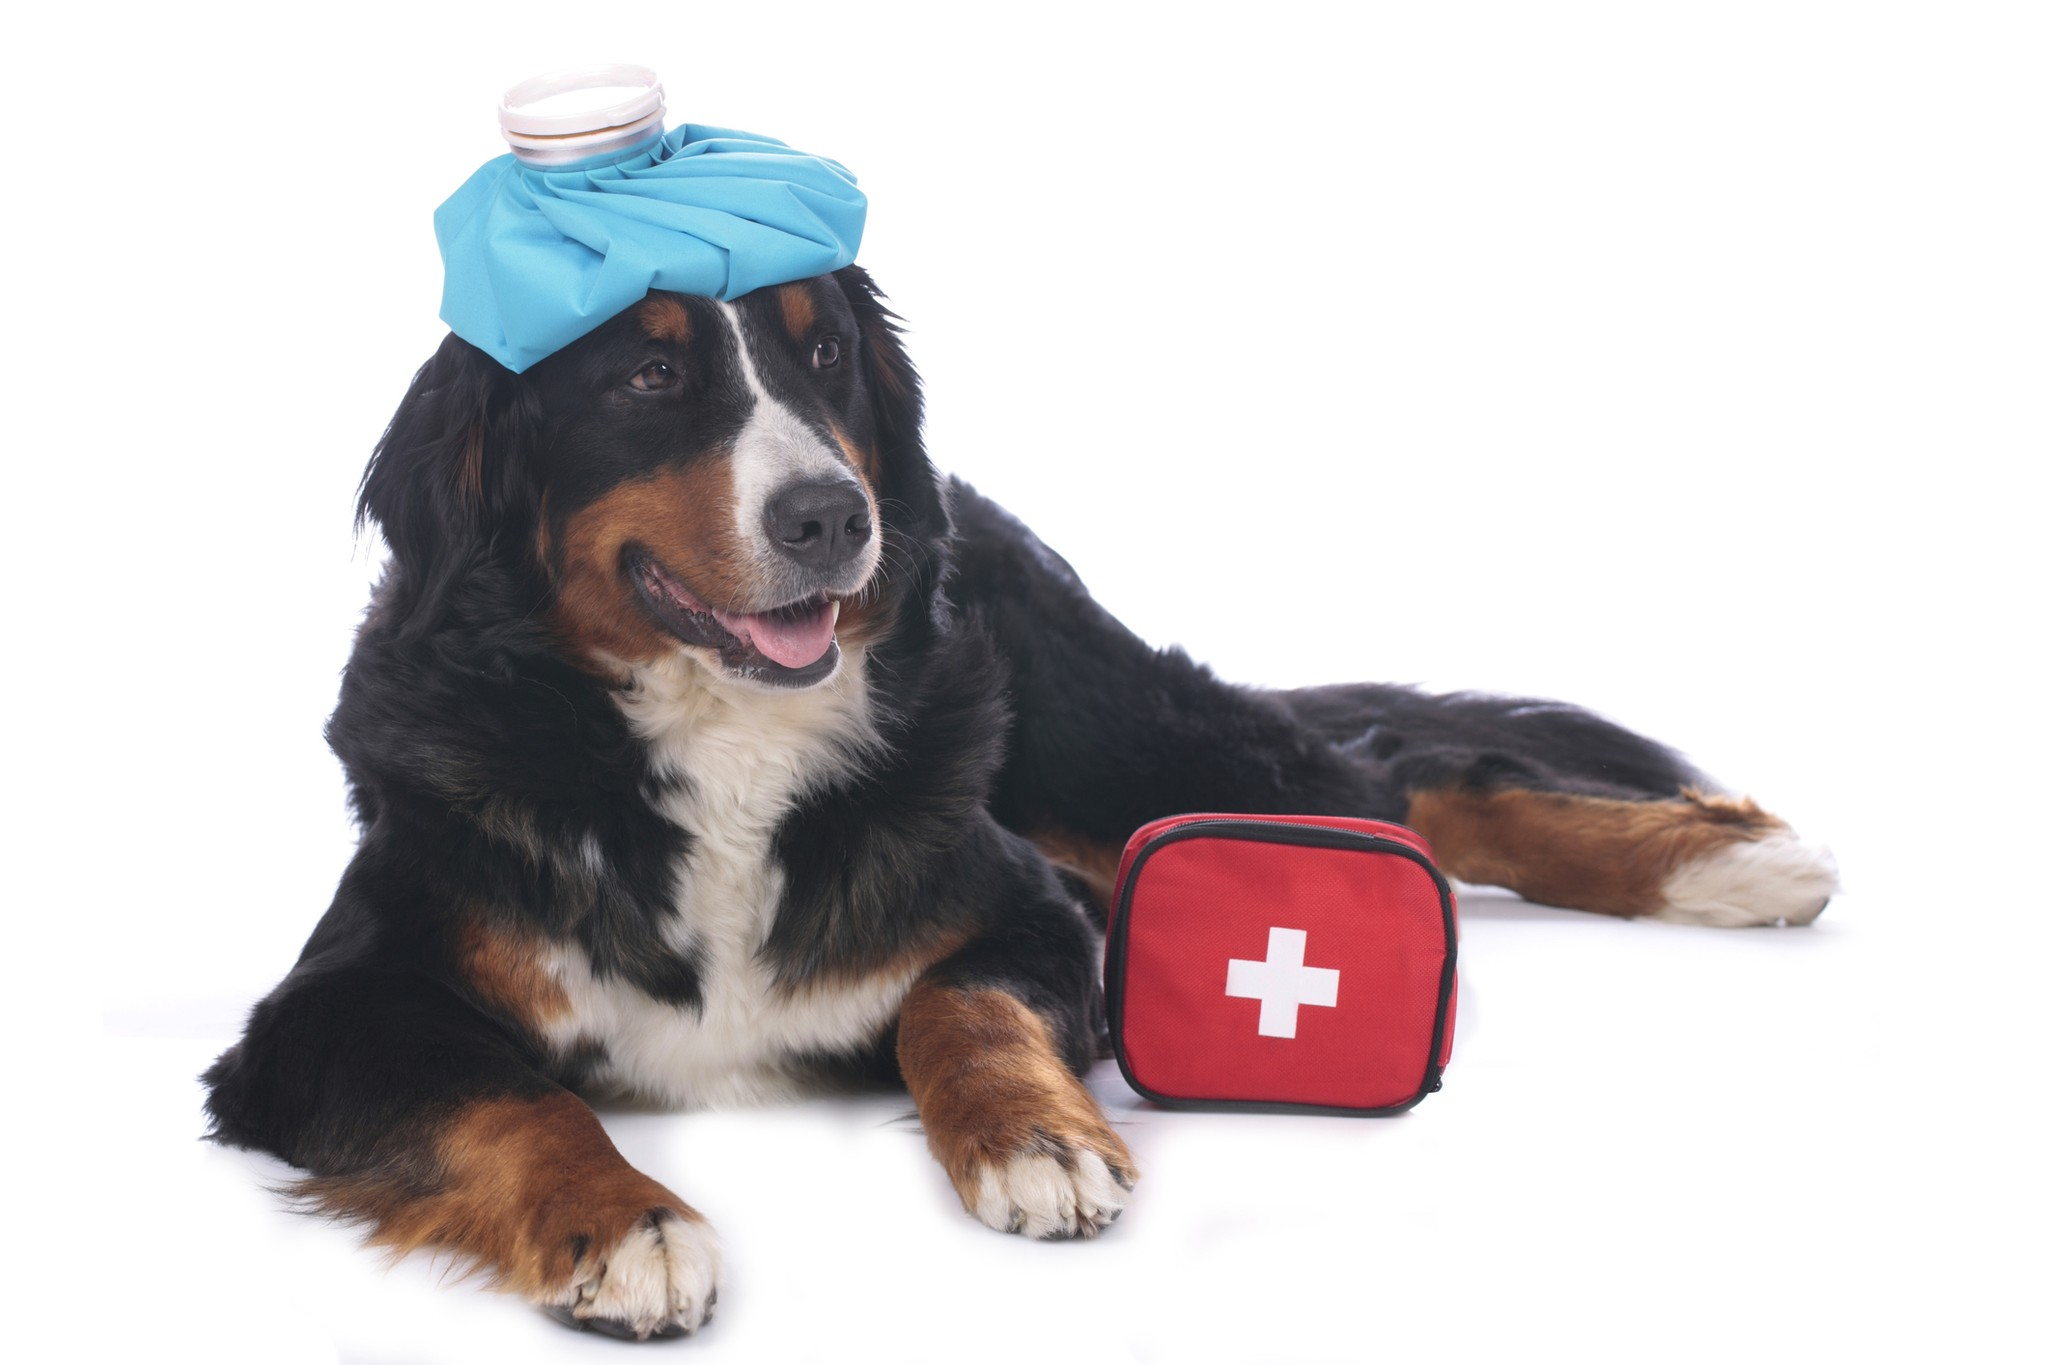 Canine Epilepsy: Cold Packs Can Help Dogs with Seizures